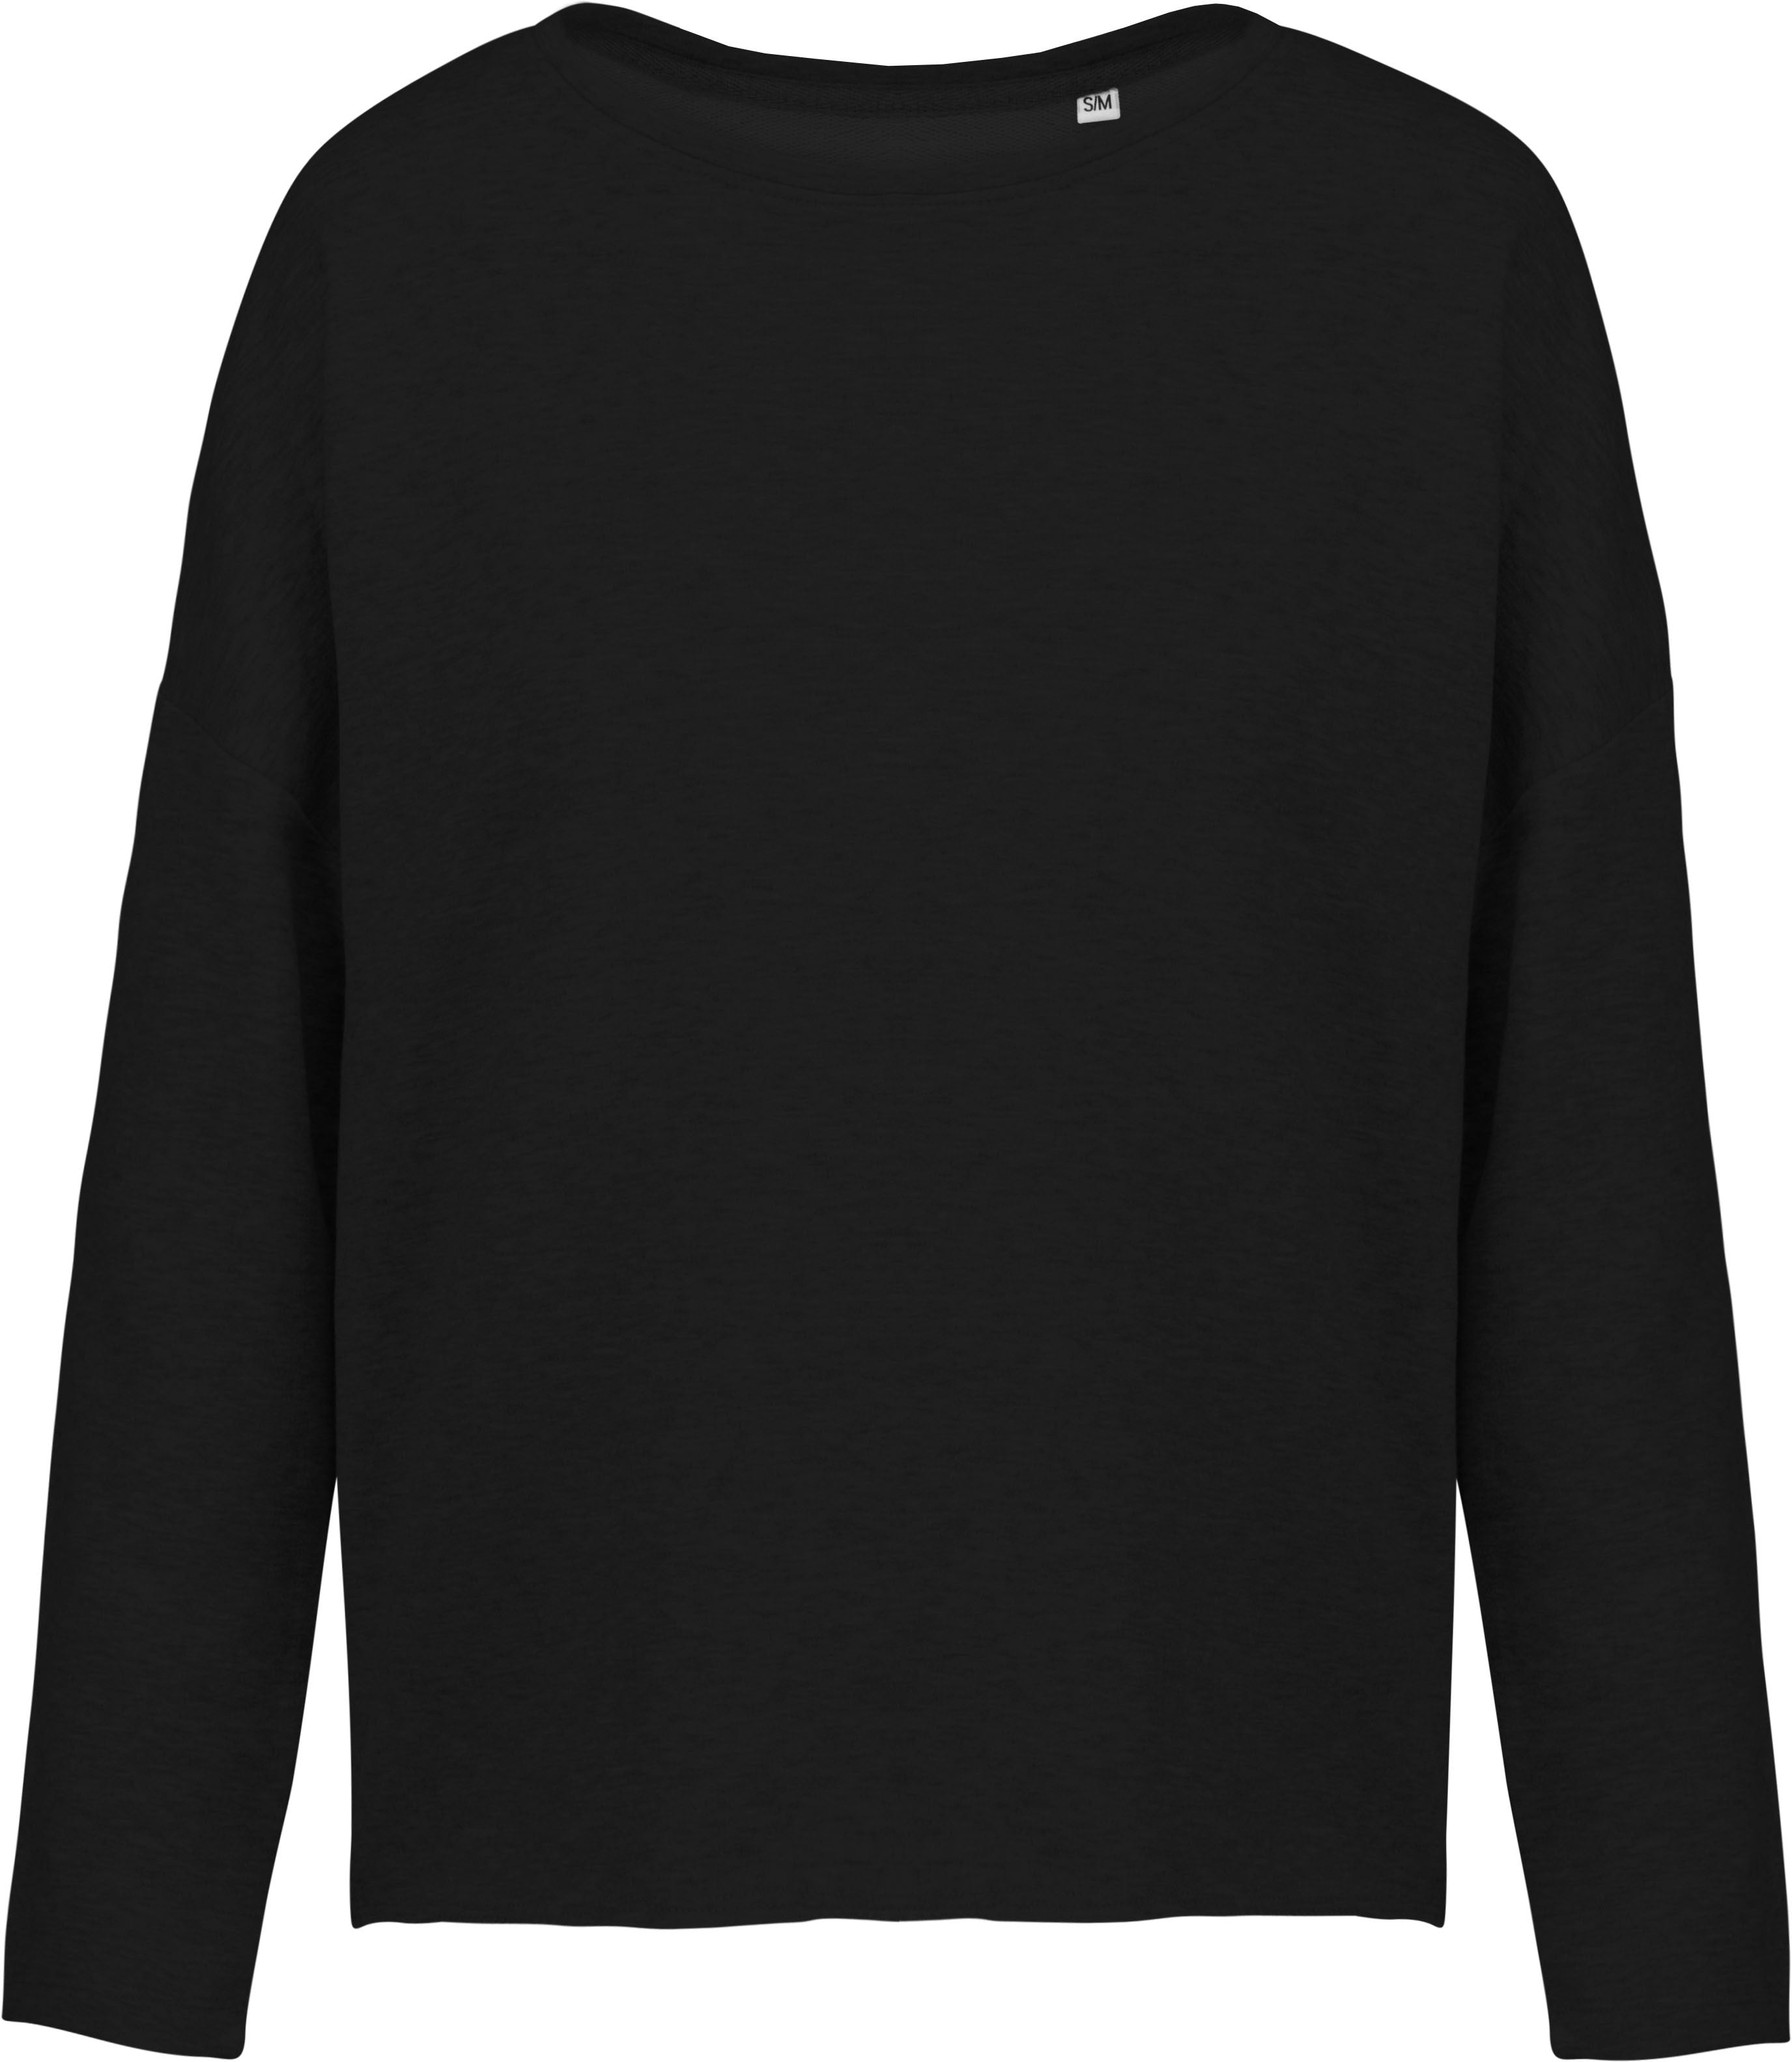 Chillax Sweater - Black